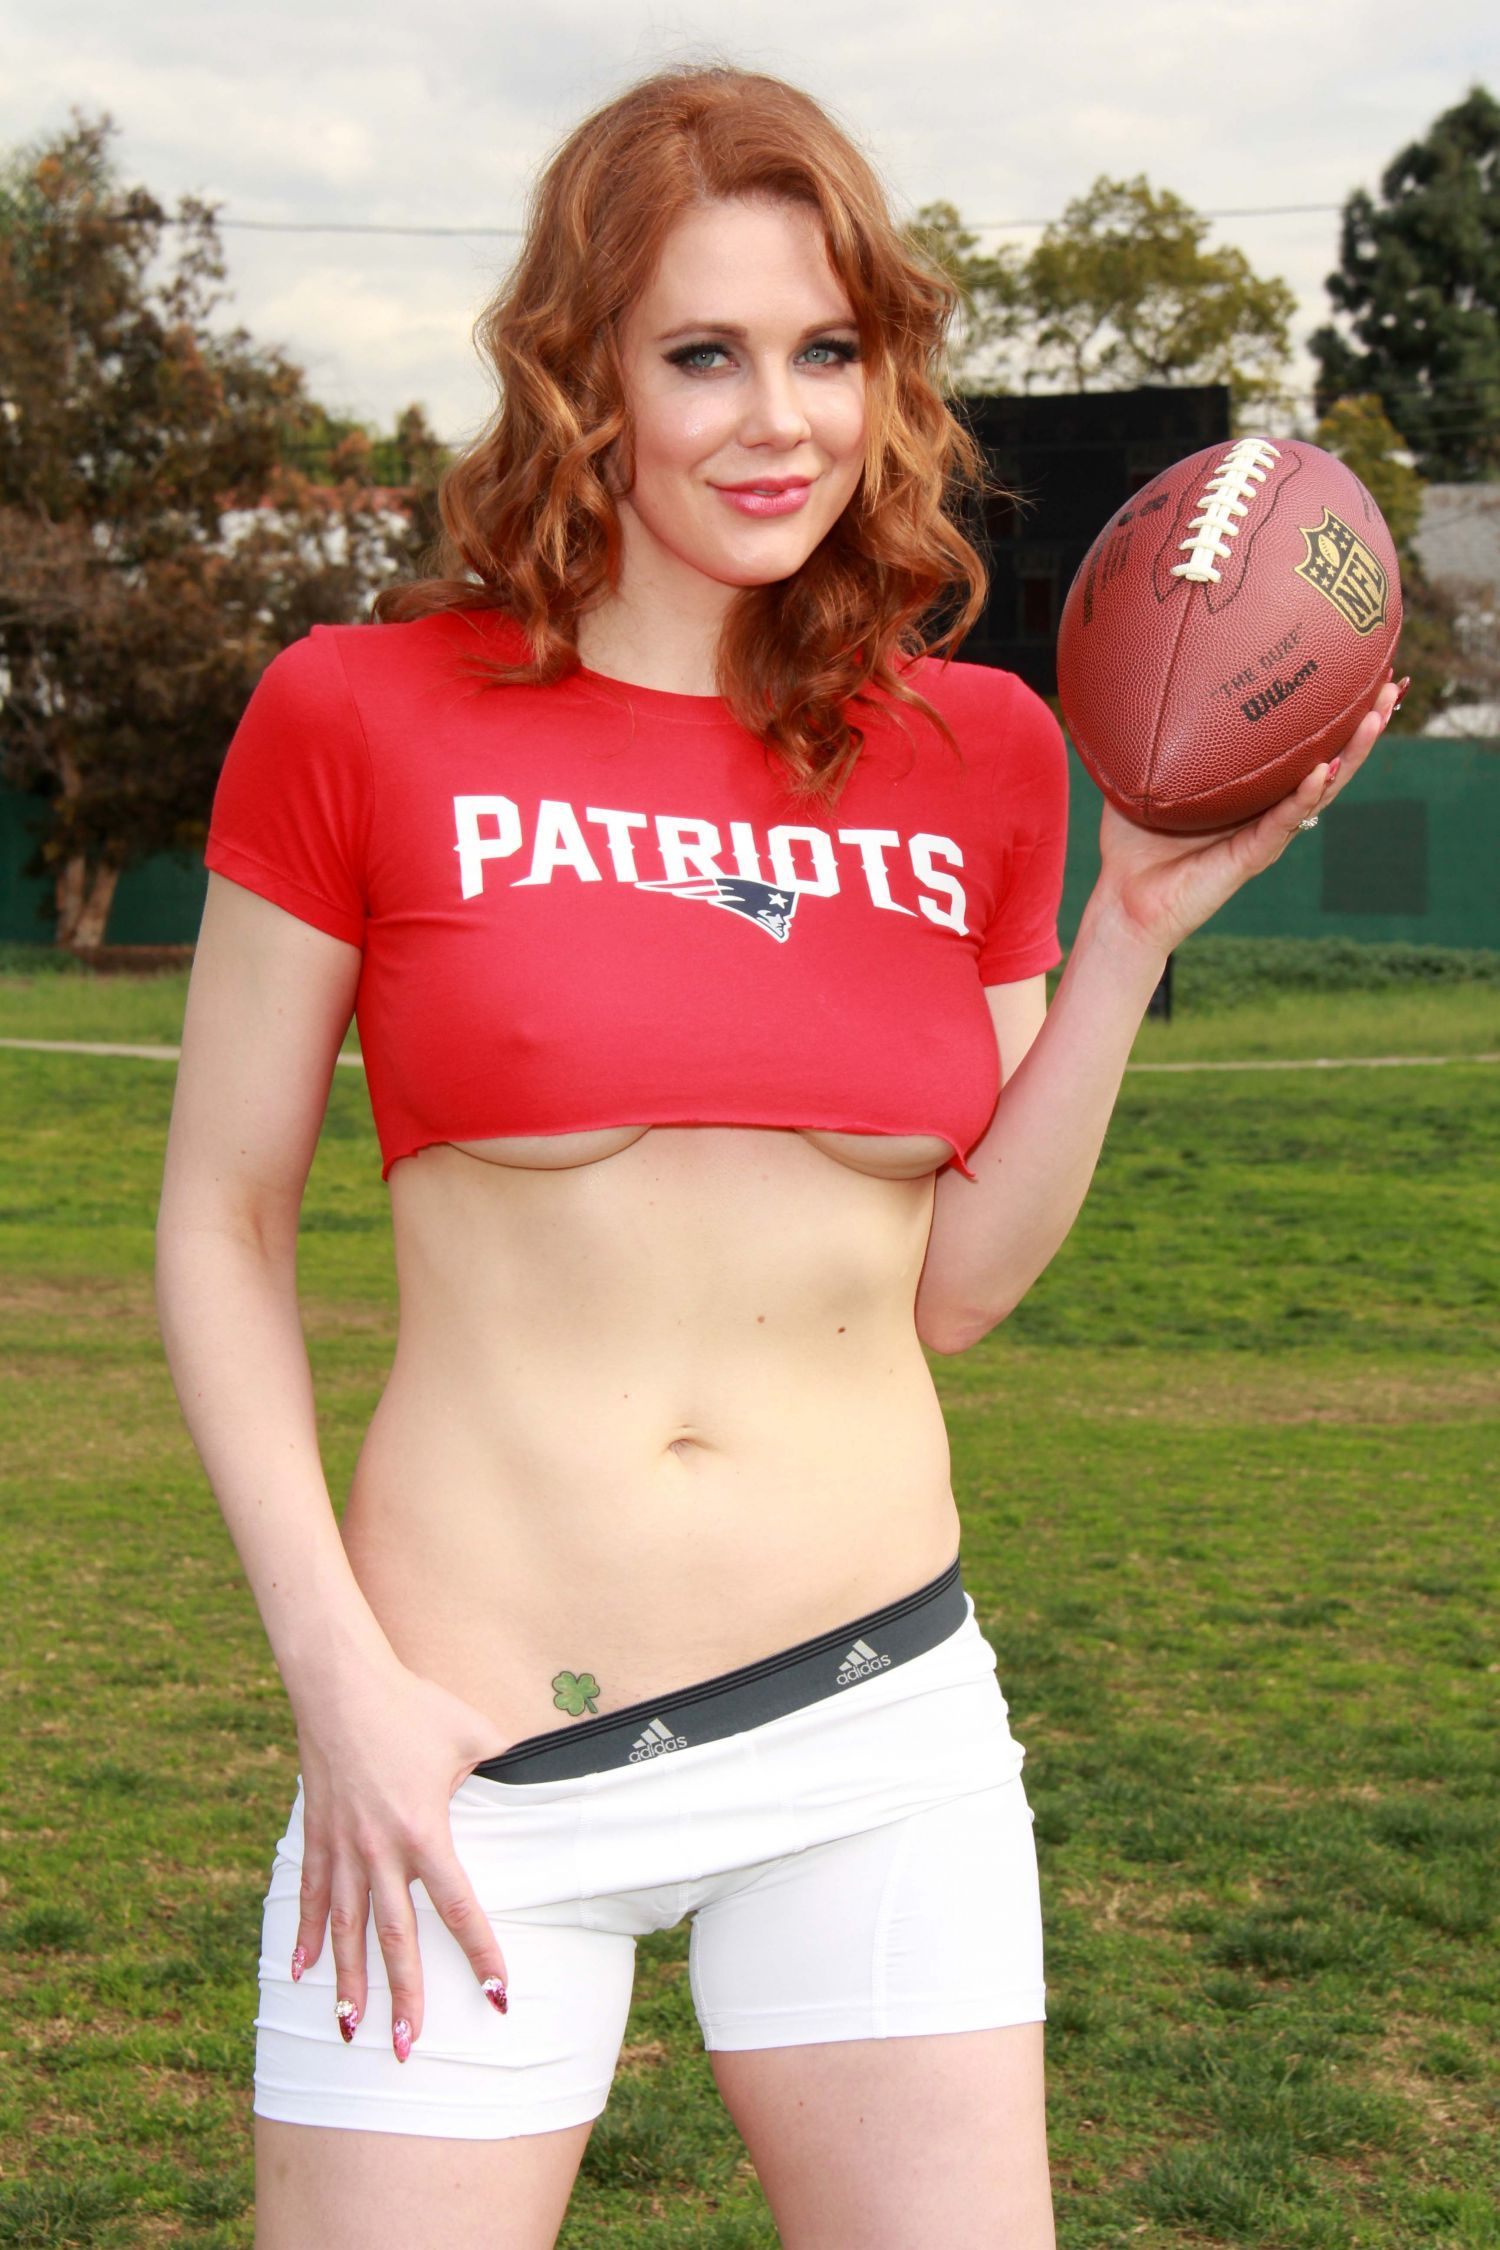 Cleavage Maitland Ward Baxter nudes (71 photo), Pussy, Paparazzi, Instagram, legs 2006